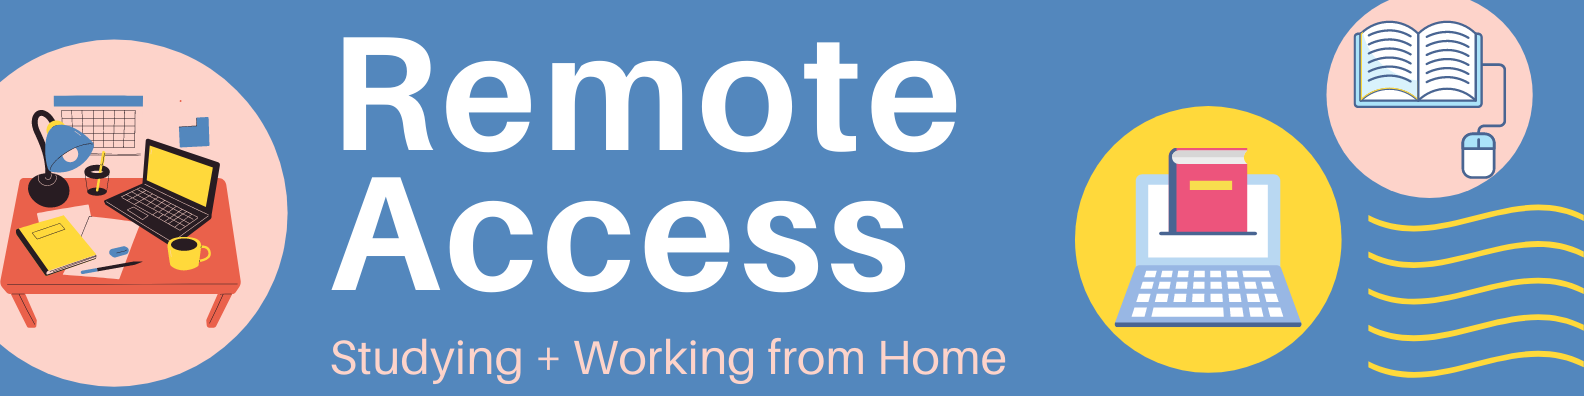 Remote access banner